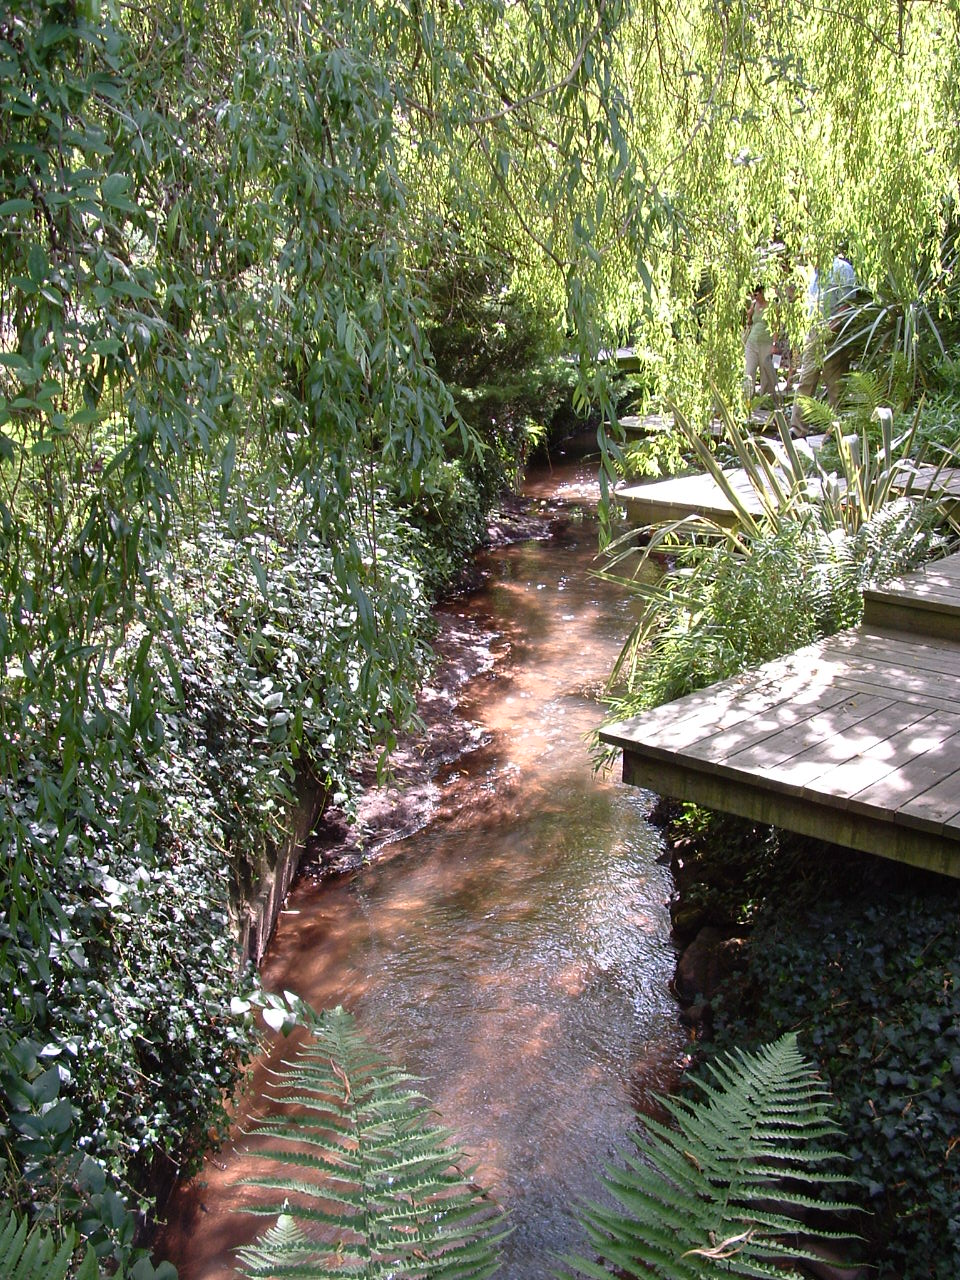 A timber walkway allows access across and around this little stream in a large garden in Herefordshire